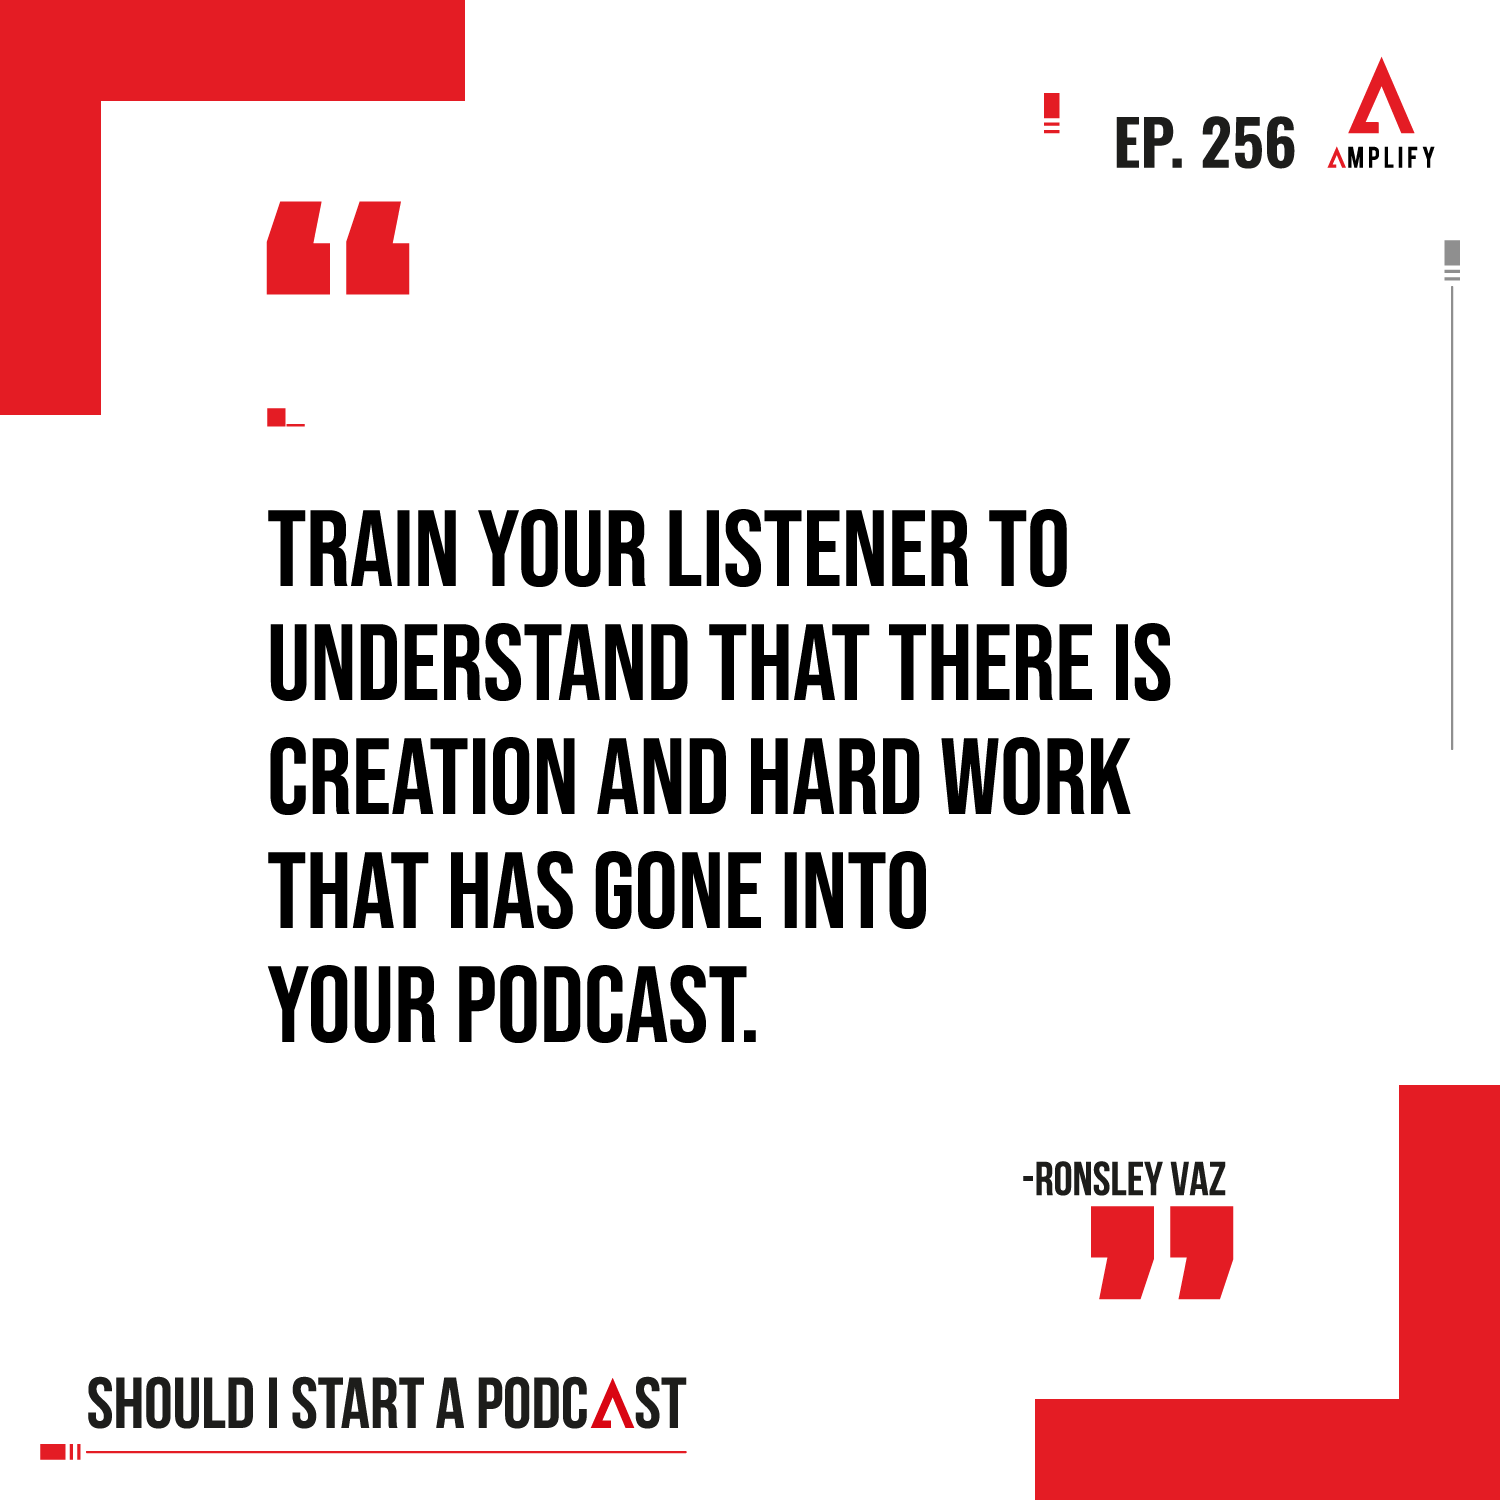 decorative image containing the quote Train your listener to understand that there is creation and hard work that has gone into your podcast.